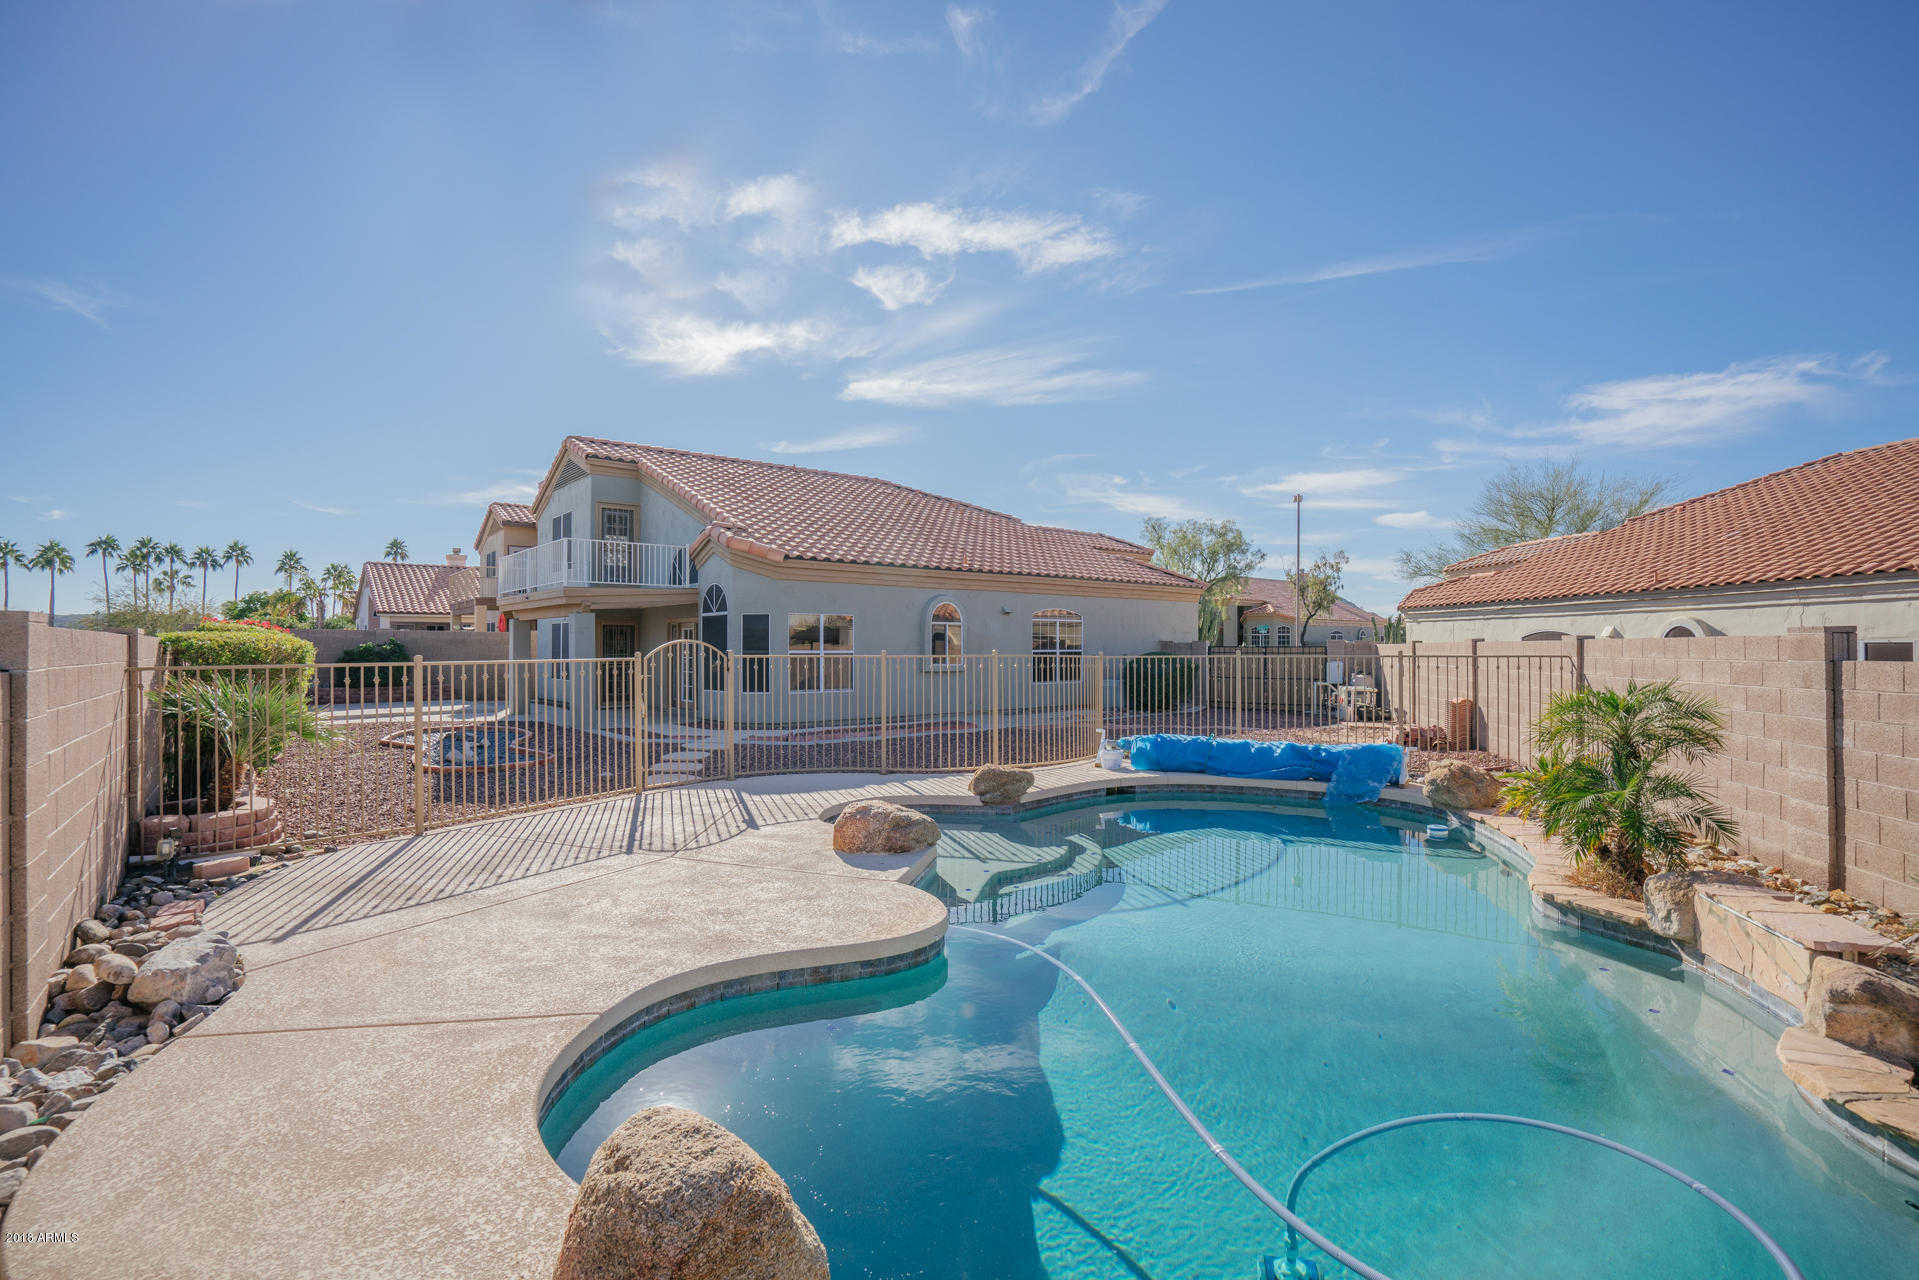 $323,000 - 3Br/3Ba - Home for Sale in Estrella Parcel 51, Goodyear